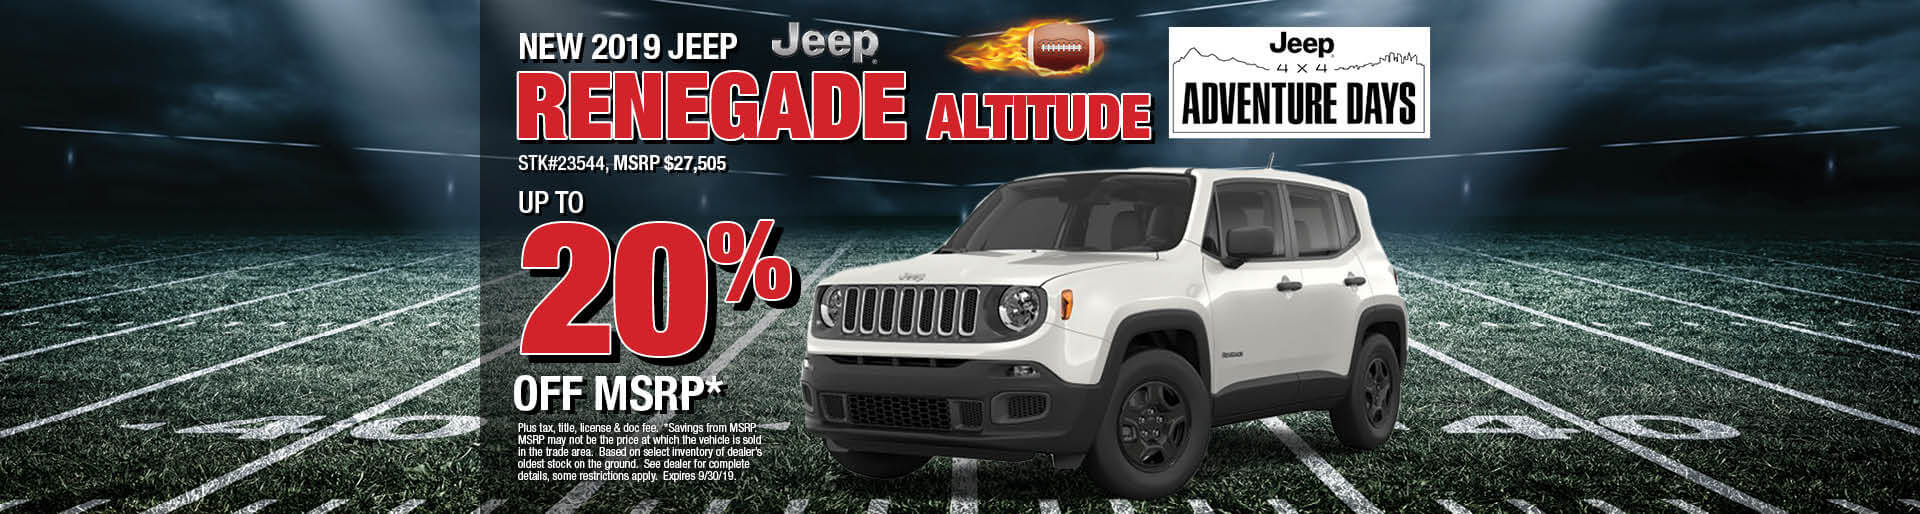 Get 20% Off MSRP on a 2019 Jeep Renegade Altitude